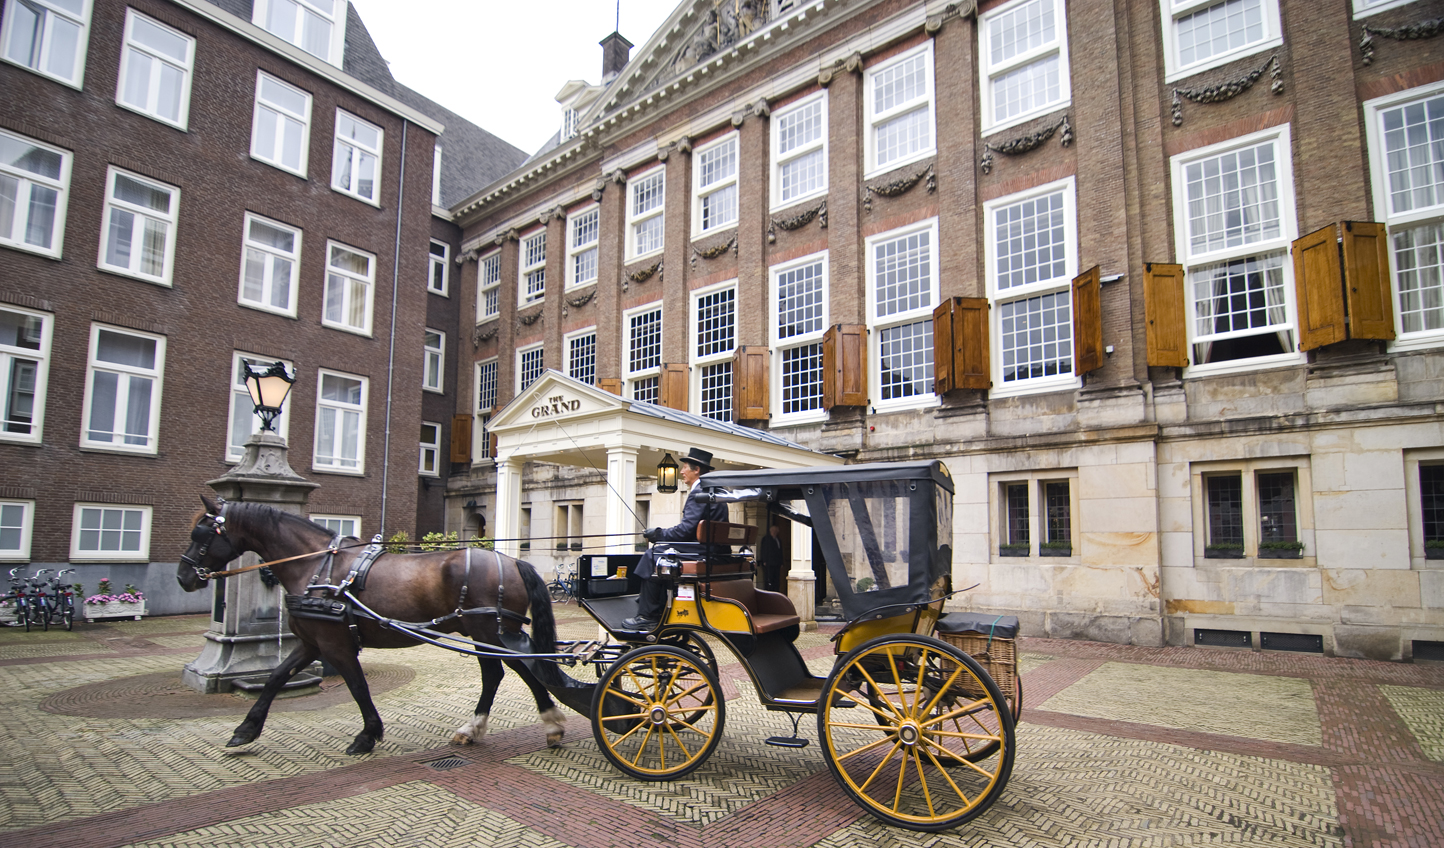 Step back in time with a horse drawn carriage